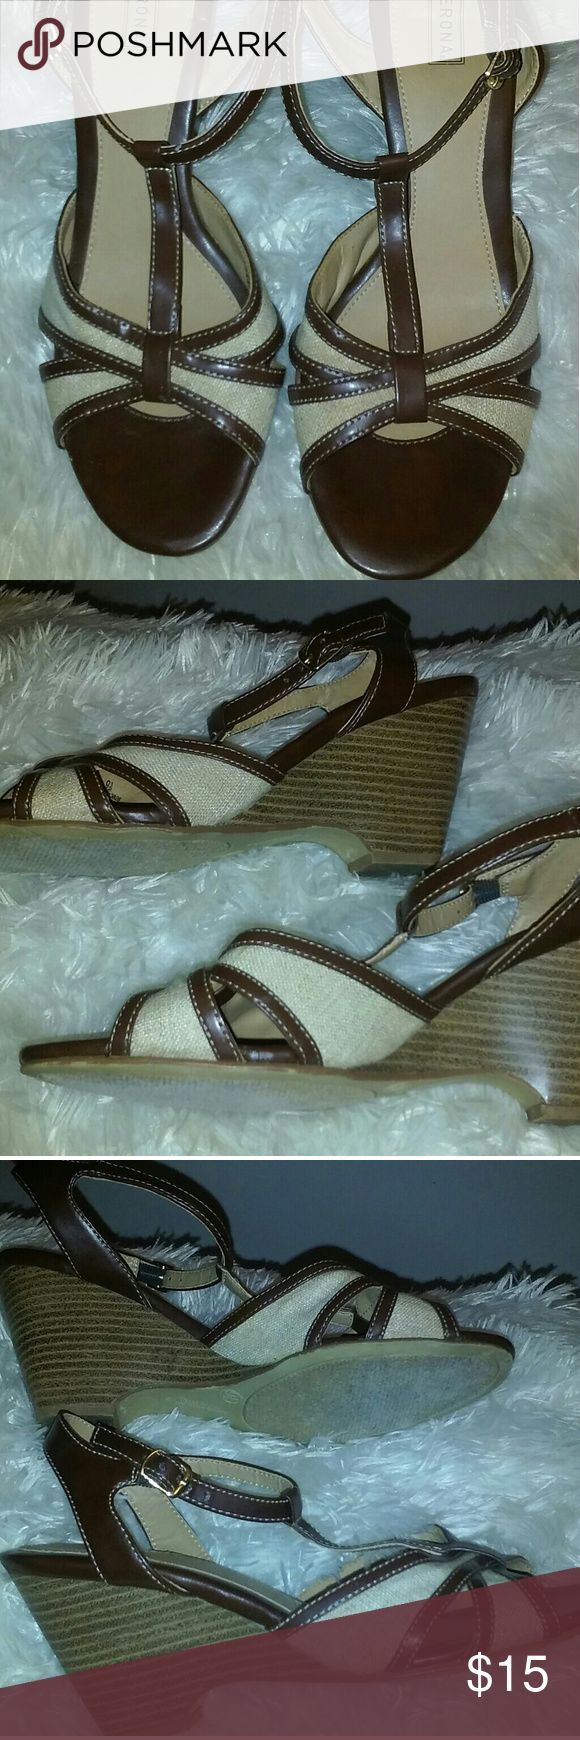 "Merona Brown & Tan Wedge Sandals Size 9.5 Nice pair of neutral wedge sandals by Merona.  Size 9.5 in great condition.  Worn once.  Buckle wrap around ankle with strap.  Wedges are faux wood and 3"" high.  Thanks for looking! Merona Shoes Wedges"